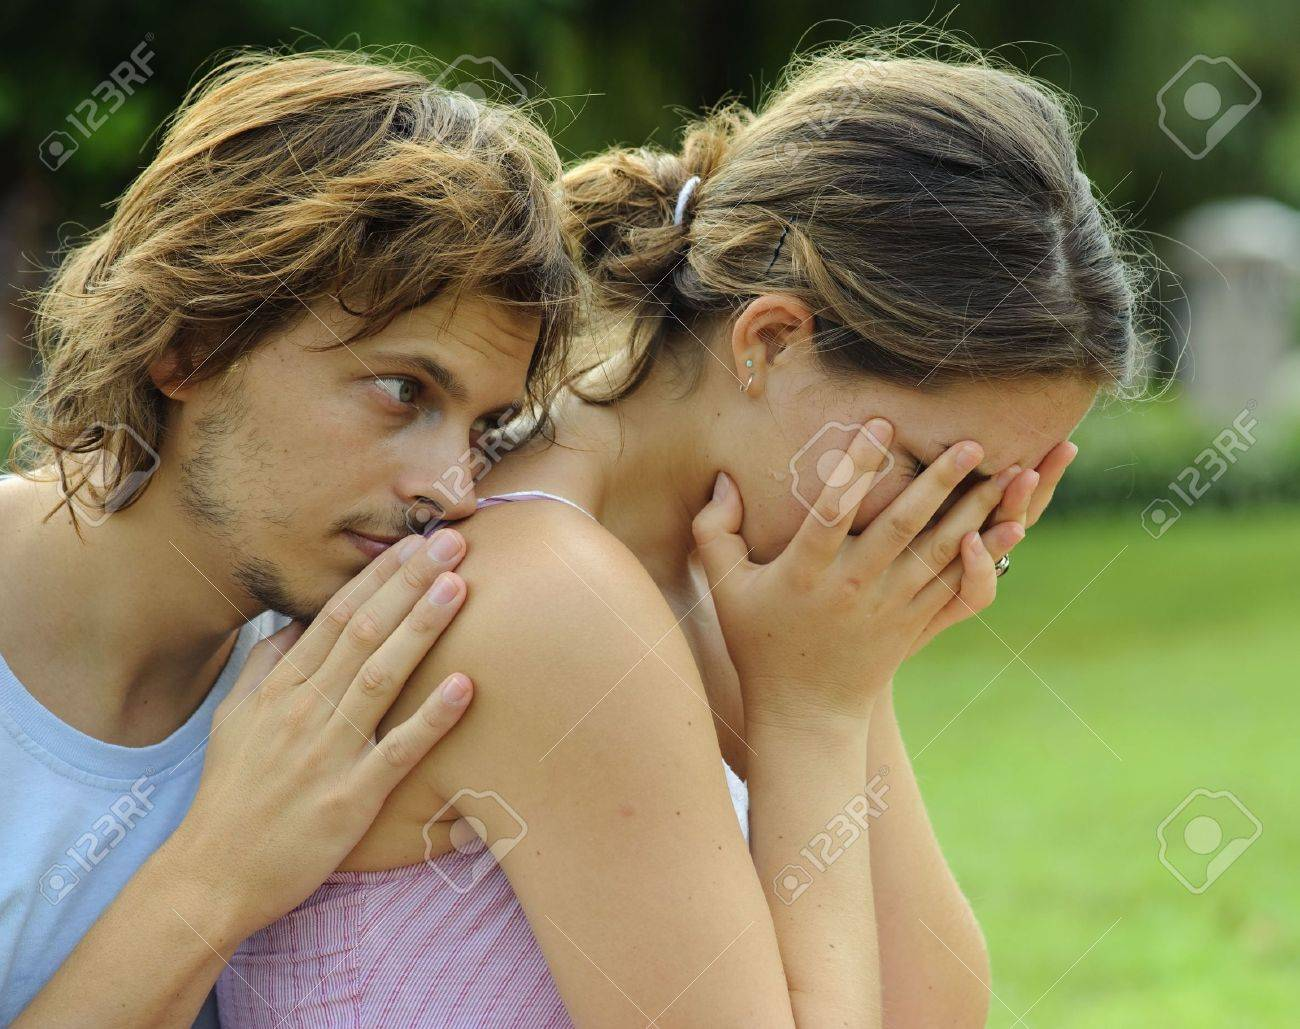 Man consoles his crying girlfriend in the park Stock Photo - 6677527